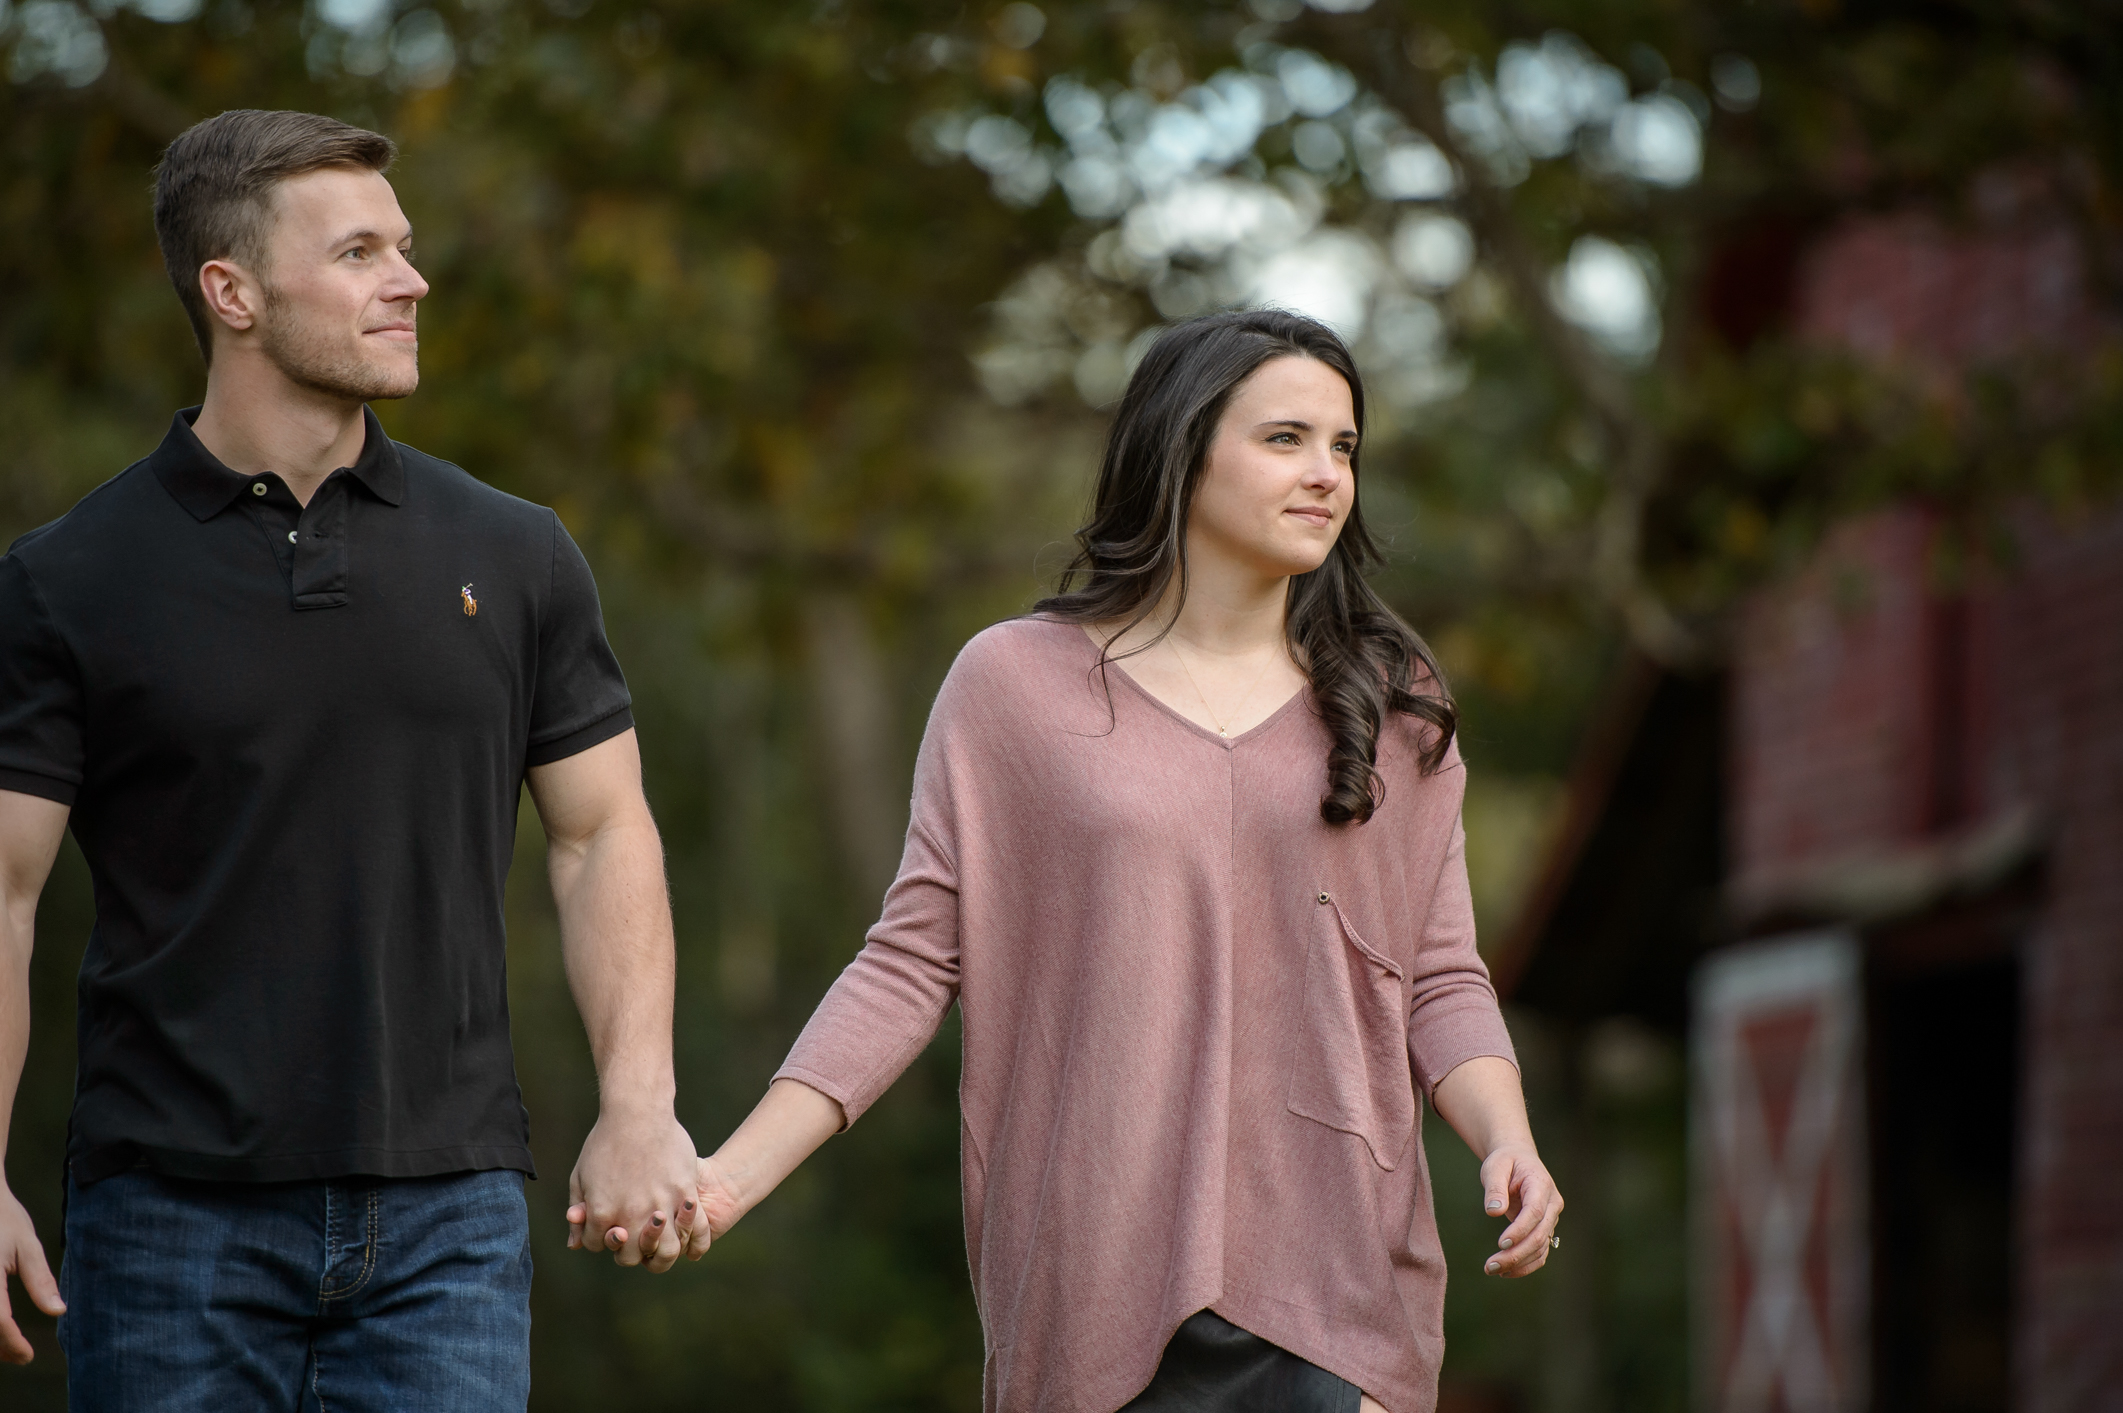 Outdoor engagement session-34.JPG